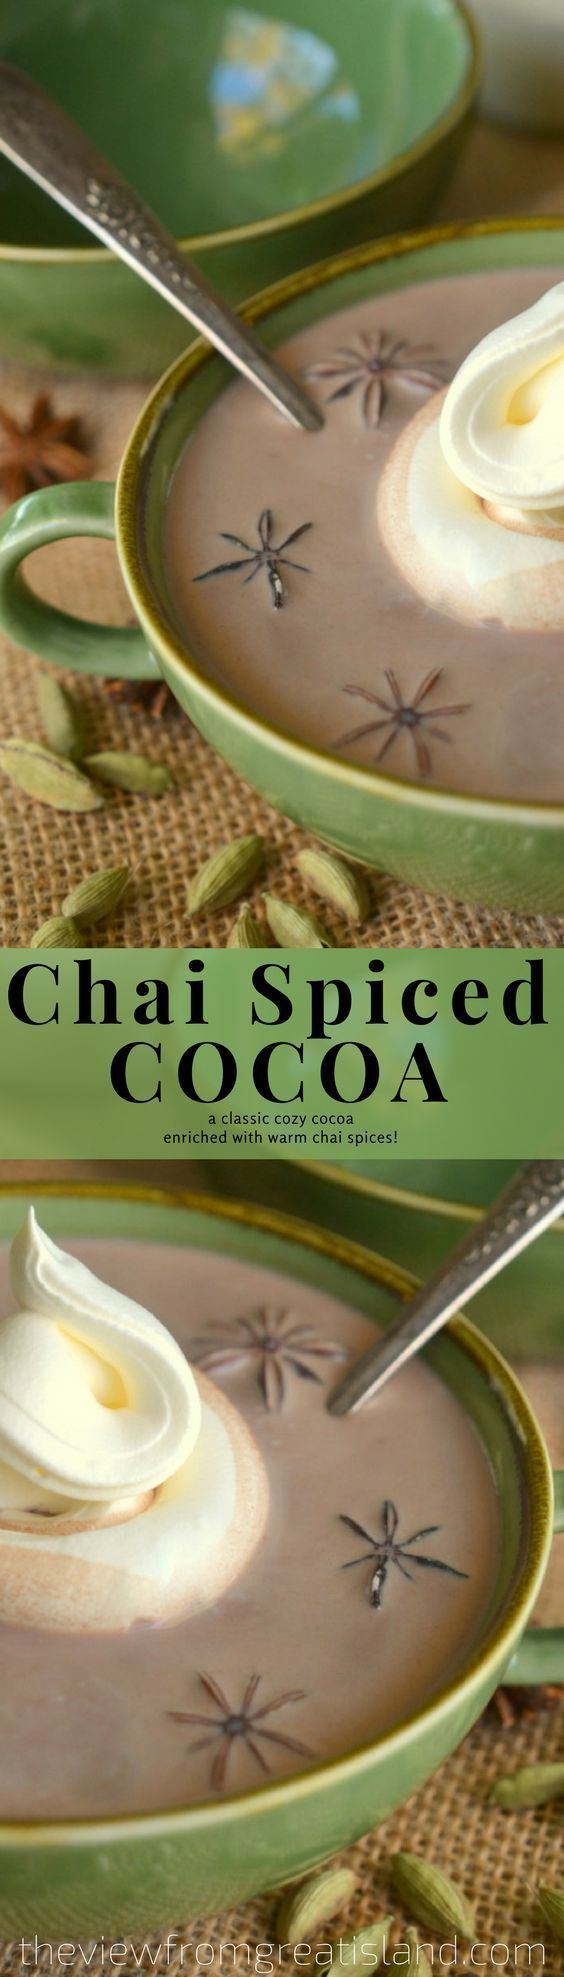 Chai Spiced Cocoa~ a classic thick hot cocoa enriched with the warming spices of chai tea! #hotchocolate #beverage #winterdrink #chai #chaitea #Chrismtasbeverage #chocolate #cinnamon #anise #cardamom #hotcocoa